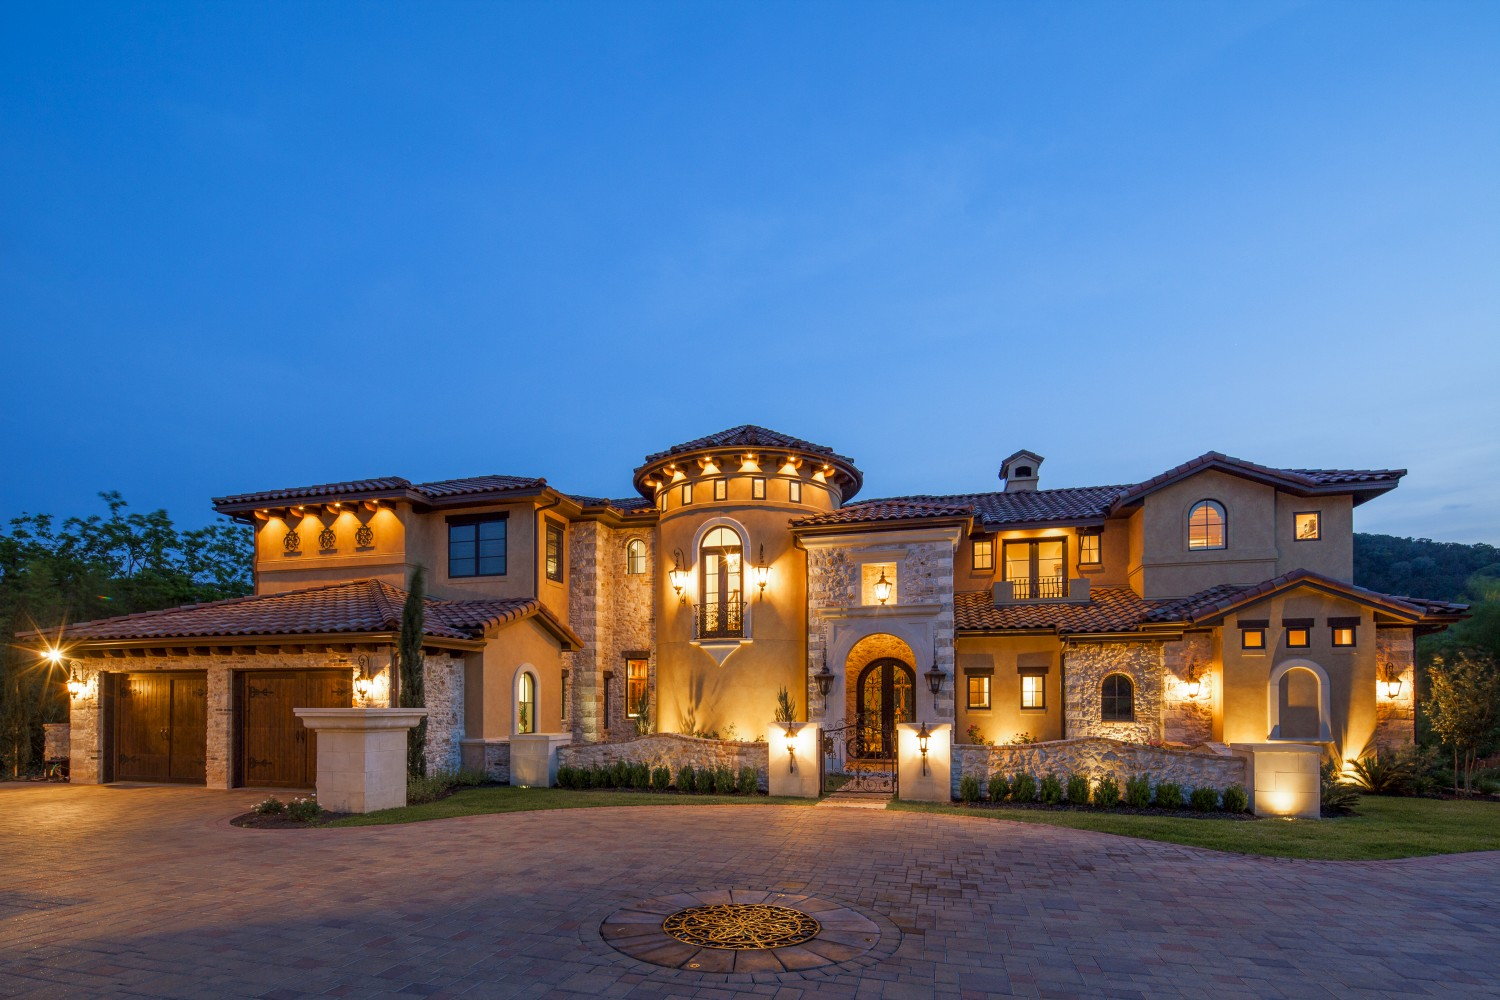 Architecture Home Eclectic old world exterior